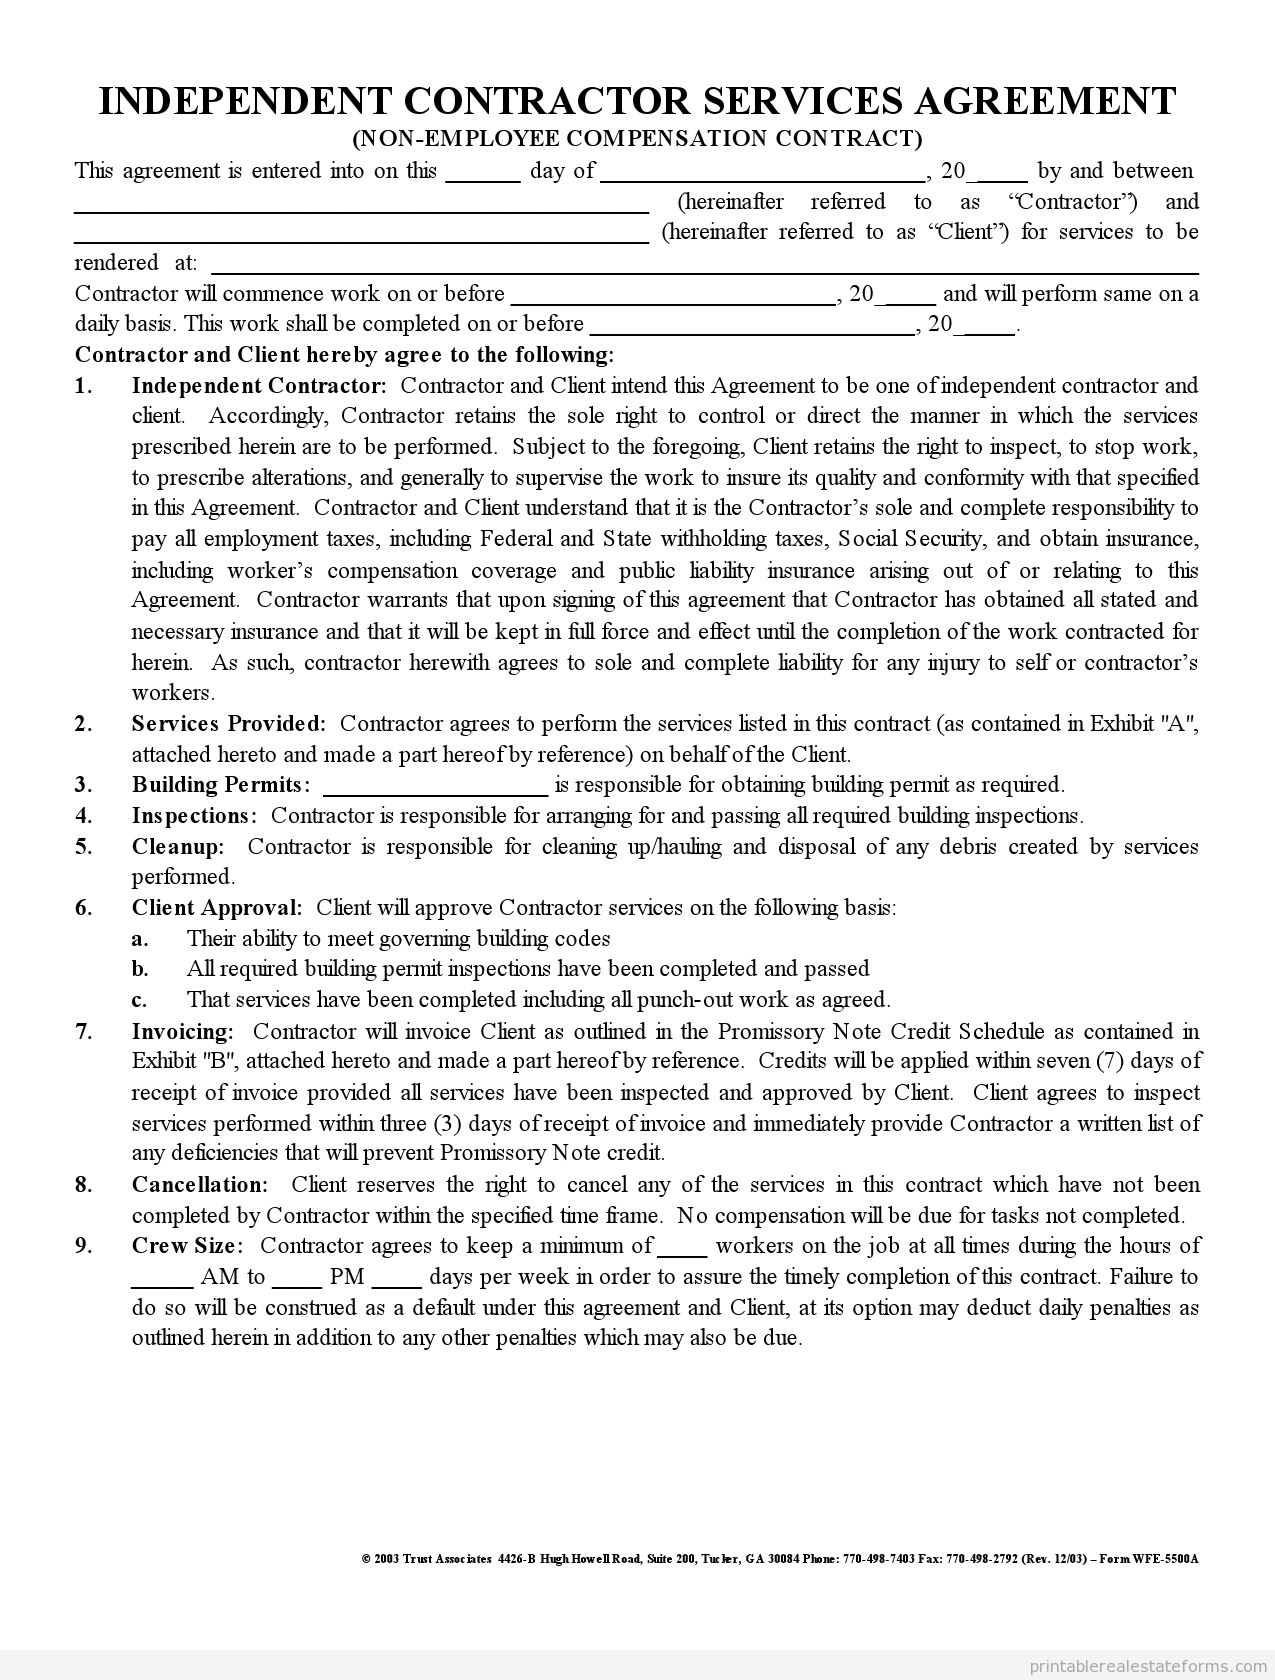 Free Printable Independent Contractor Agreement Form  Printable